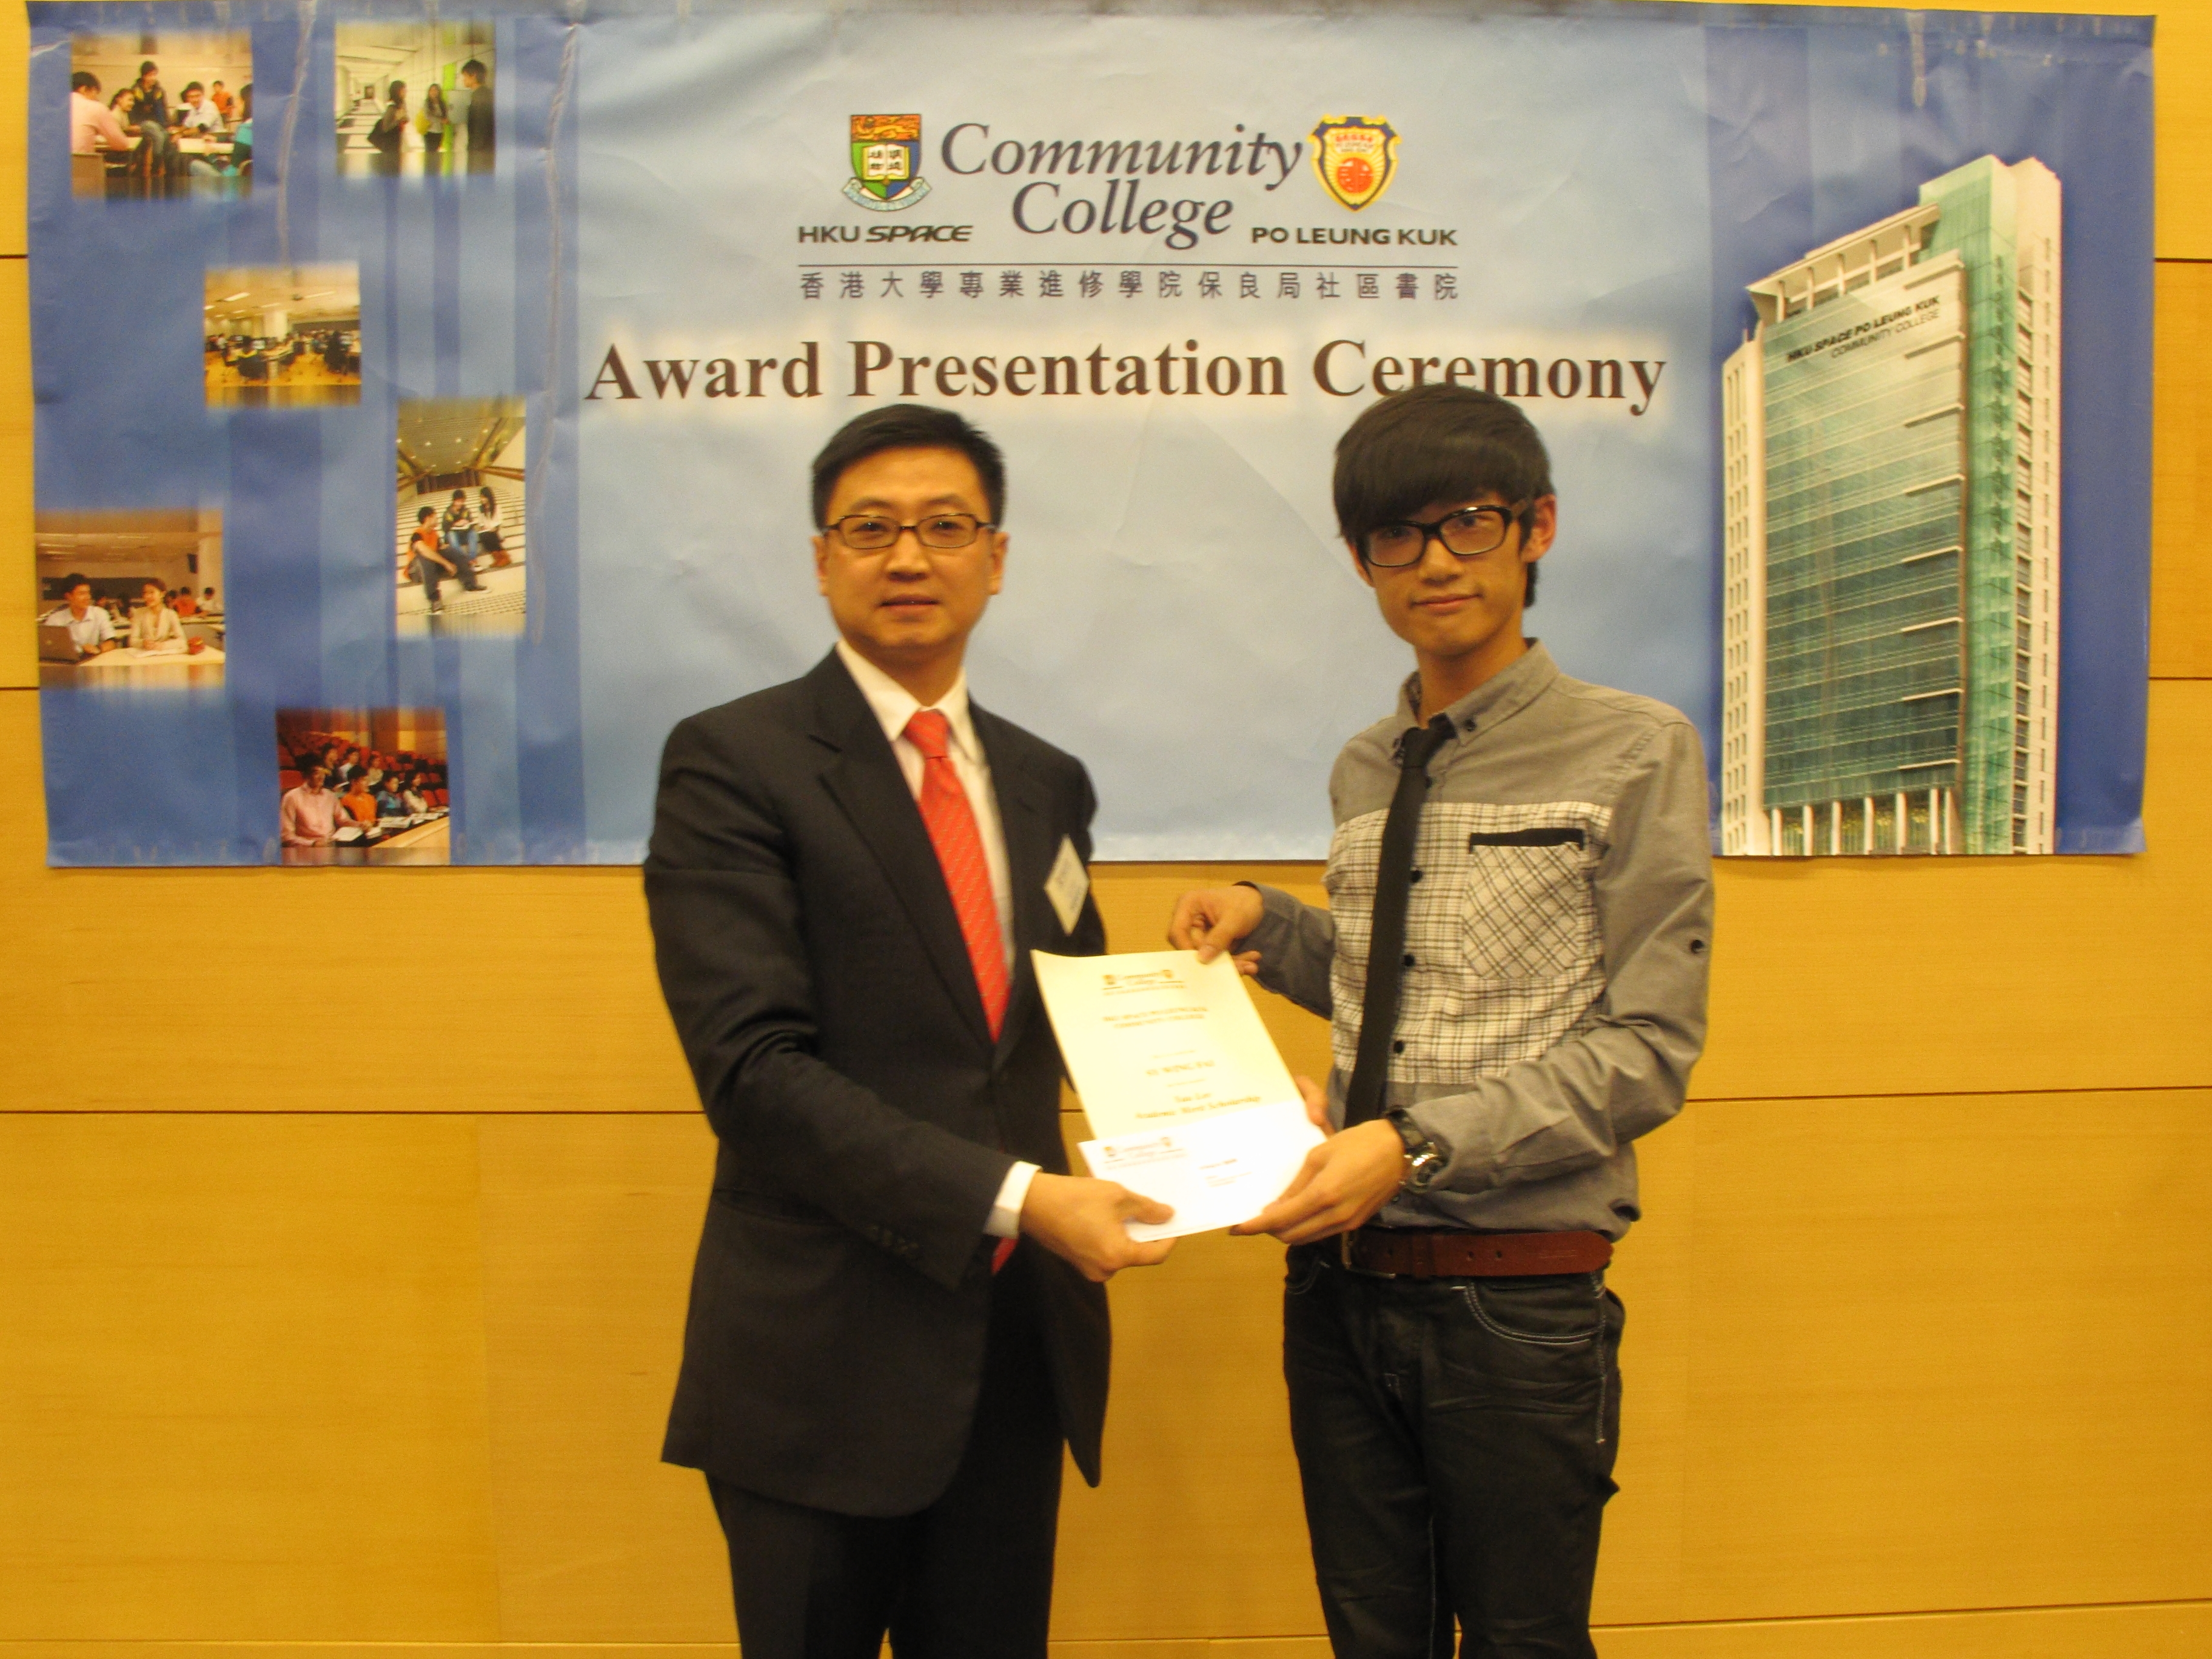 Award Presentation Ceremony 2011 - Photo - 17